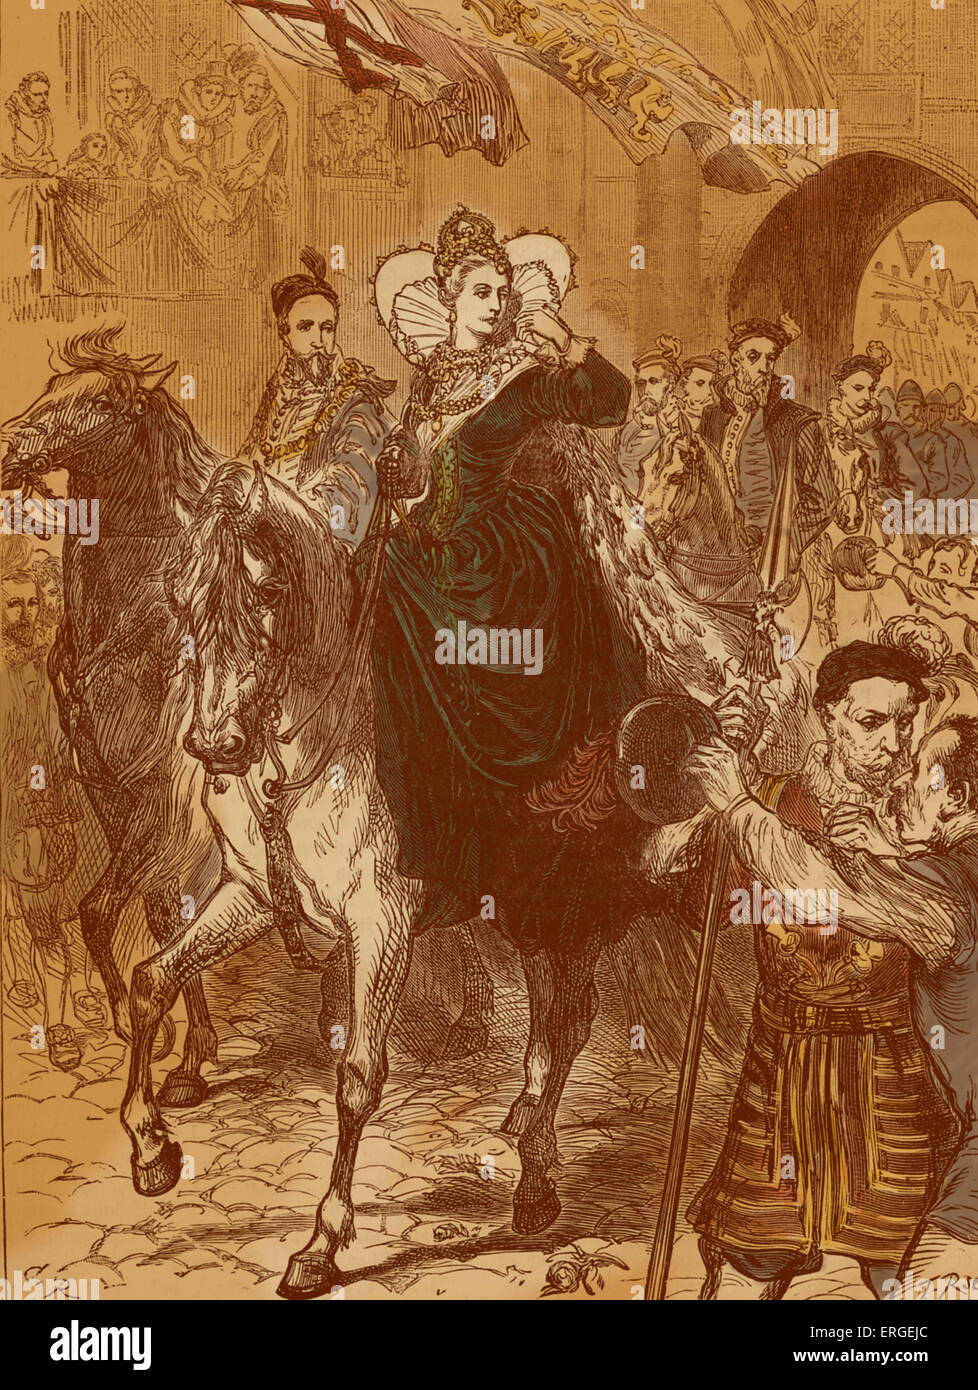 Queen Elizabeth I enters London, 23 December 1558. On horseback accompanied by her court. Queen of England and Ireland - Stock Image